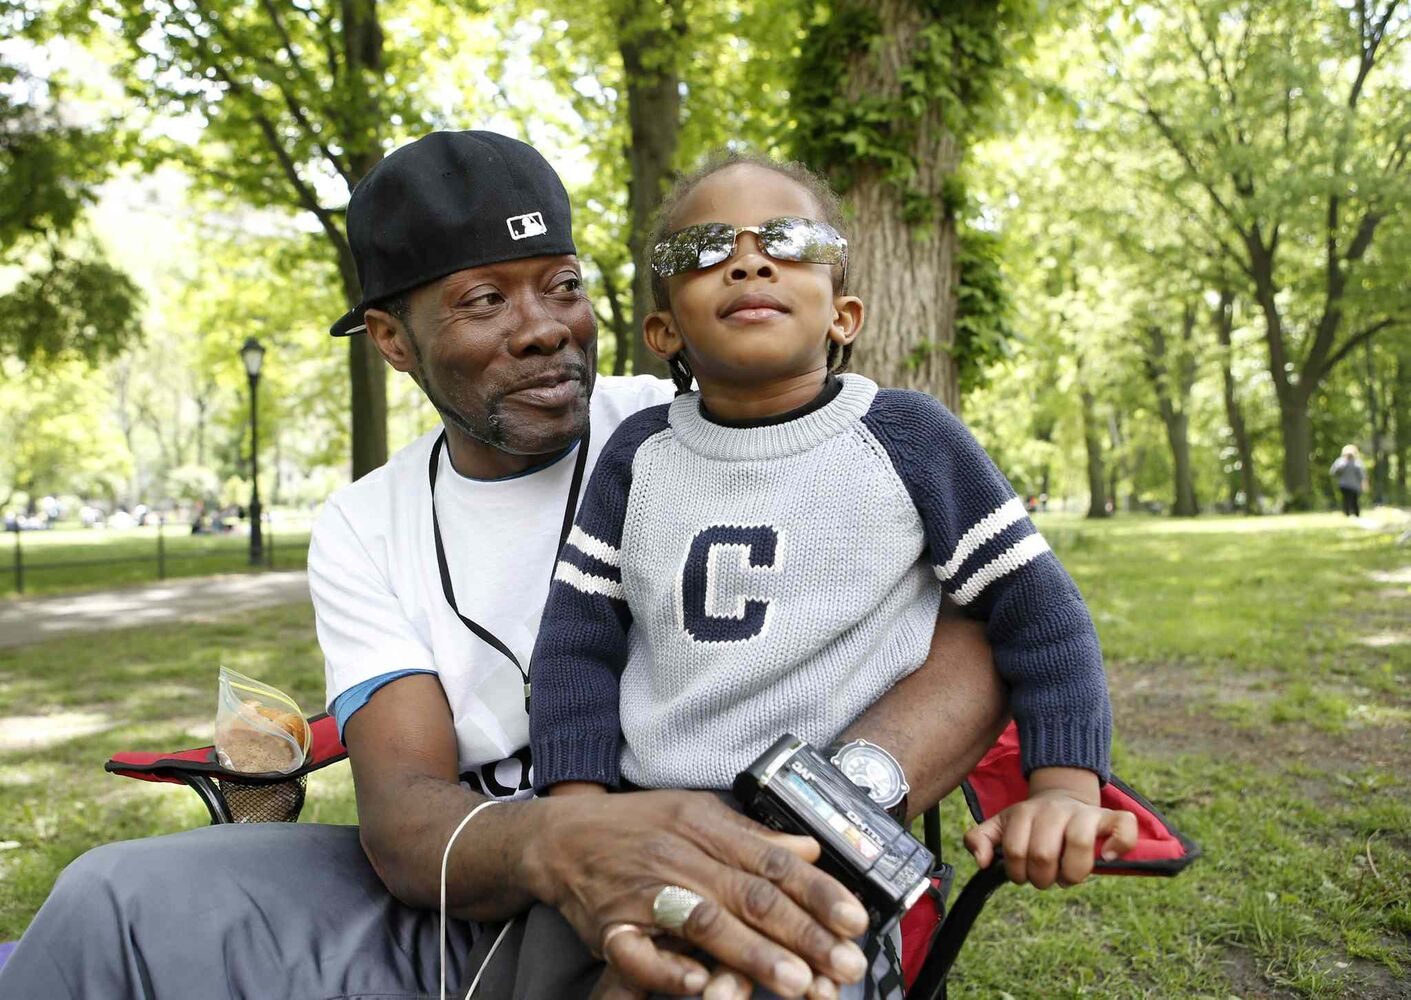 "Jamez James, 47, of the Brooklyn borough of New York, holds his son, Melchi-Tzdec, during an outing in New York's Central Park. Before becoming a father, James said, ""I was a single guy, living the life, well, so I thought."" James describes fatherhood as opening a door, and ""little did I know, as I chose to go through, my entire life changed... That's where I met my son, on the other side of the door.""  (Kathy Willens / The Associated Press)"